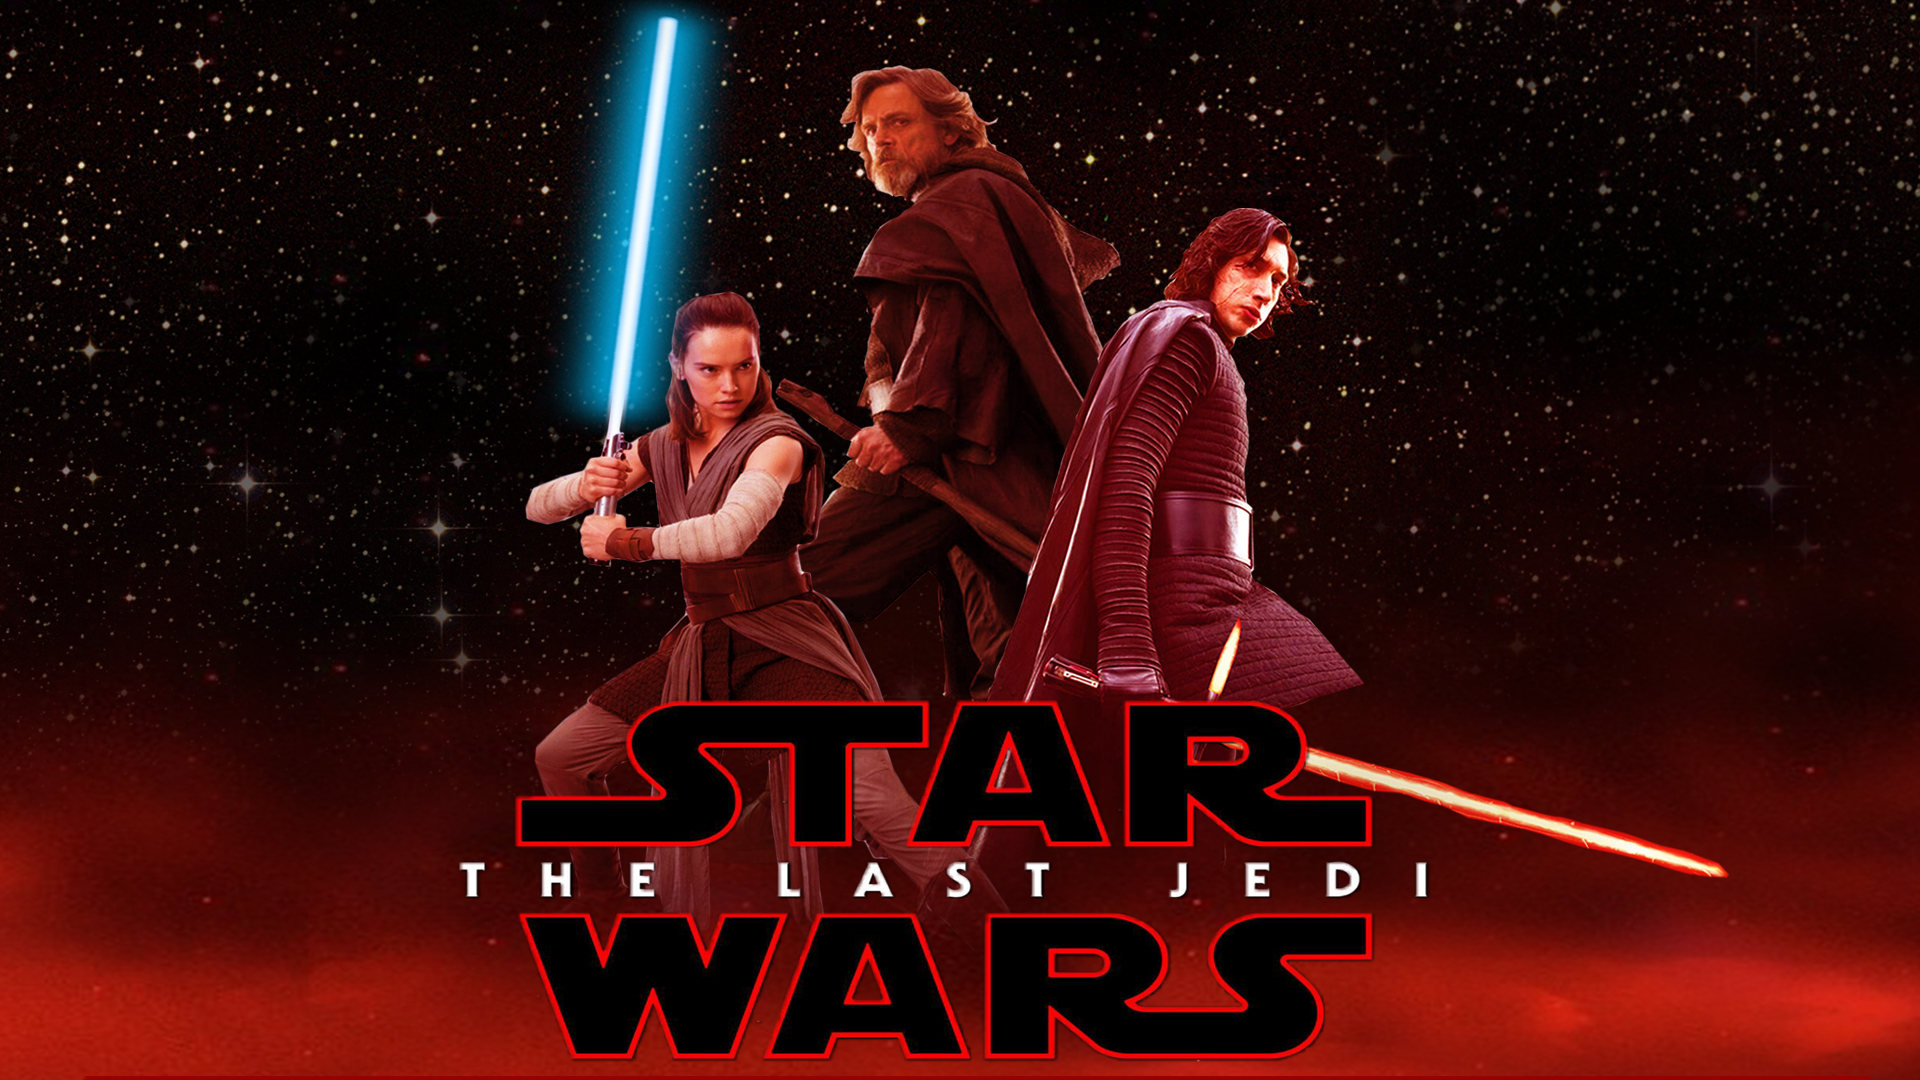 The Last Jedi Wallpapers Posted By Samantha Sellers